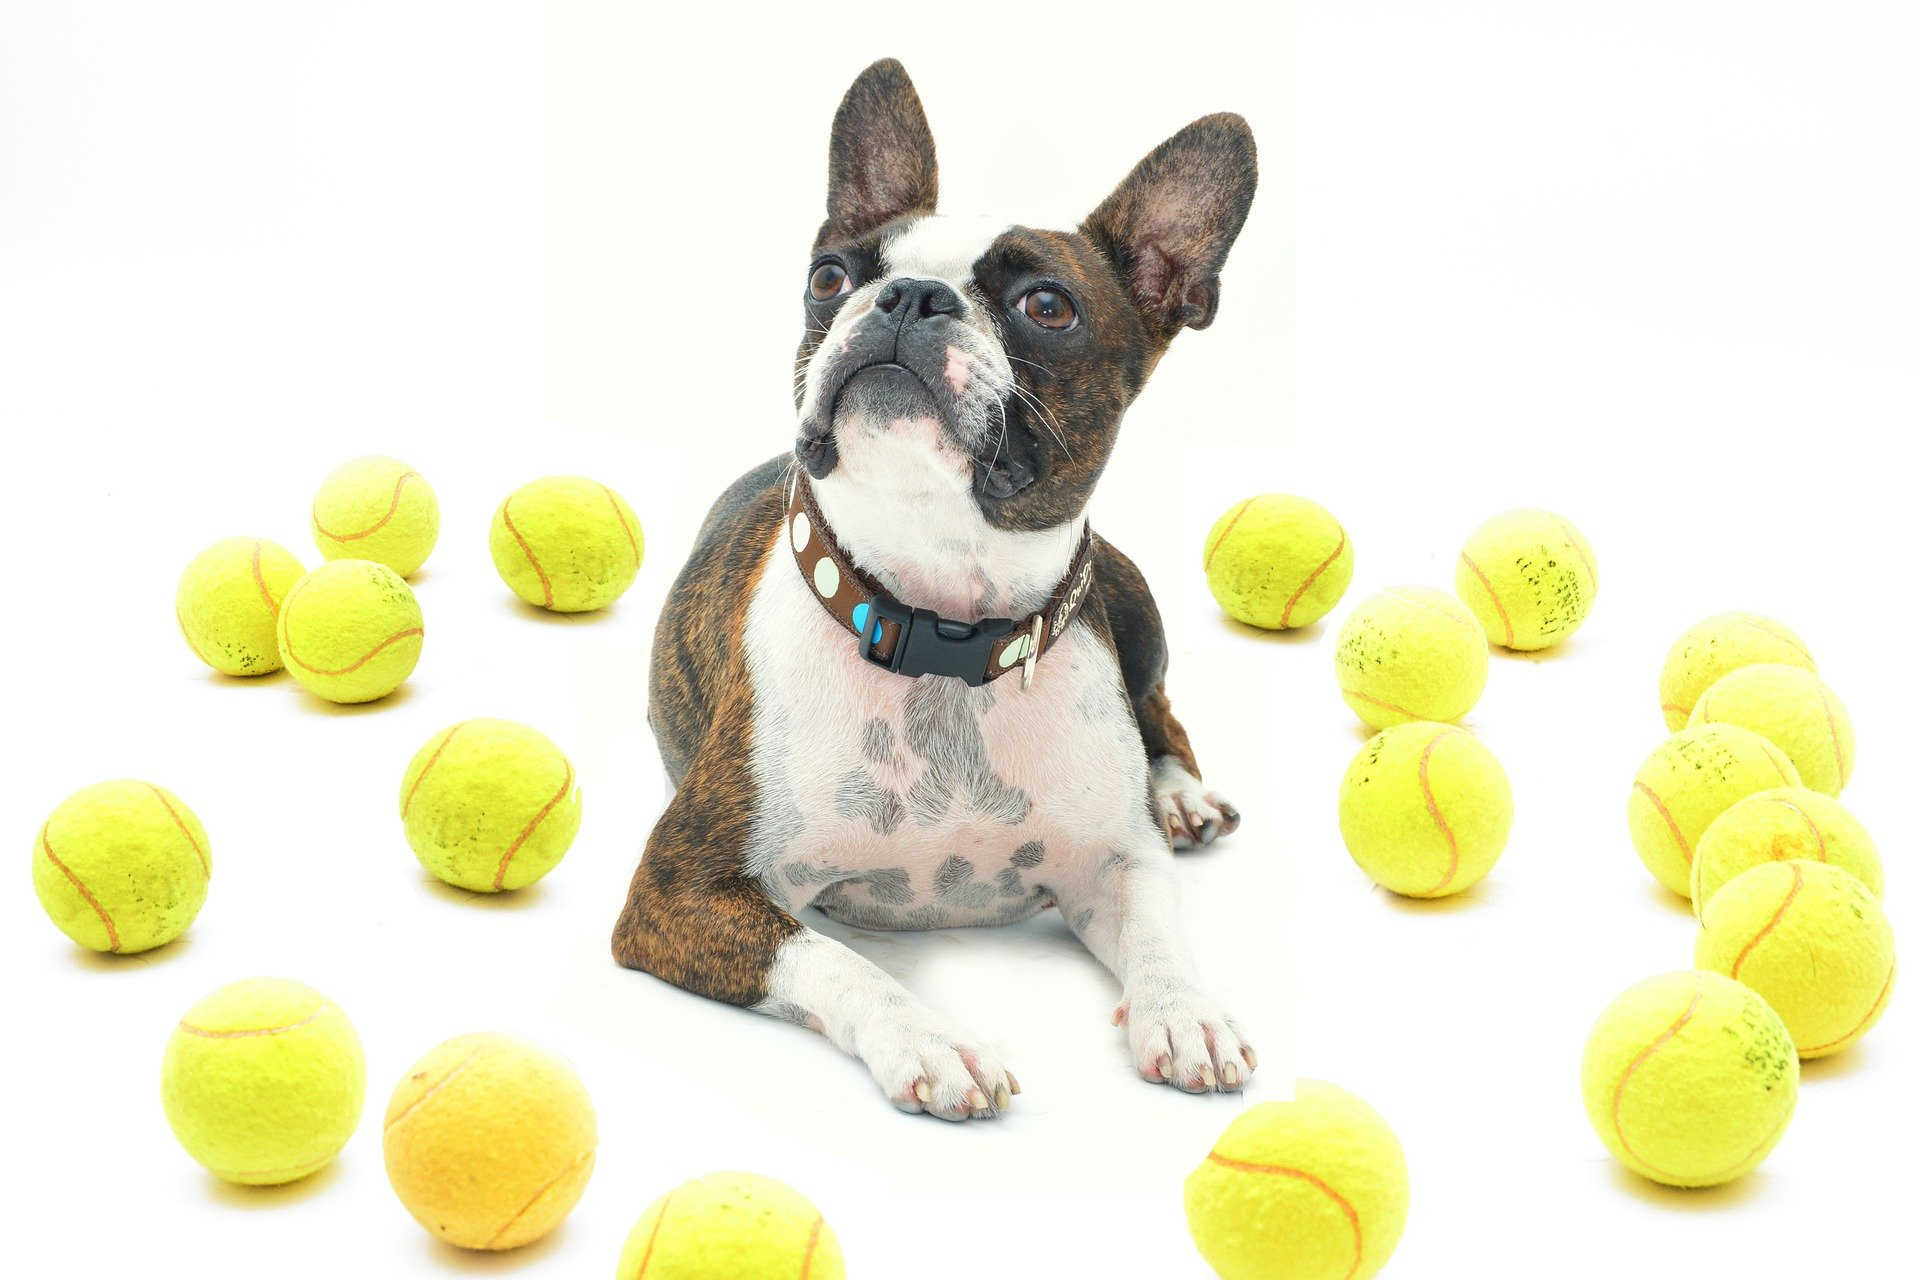 tennis ball launchers for dogs